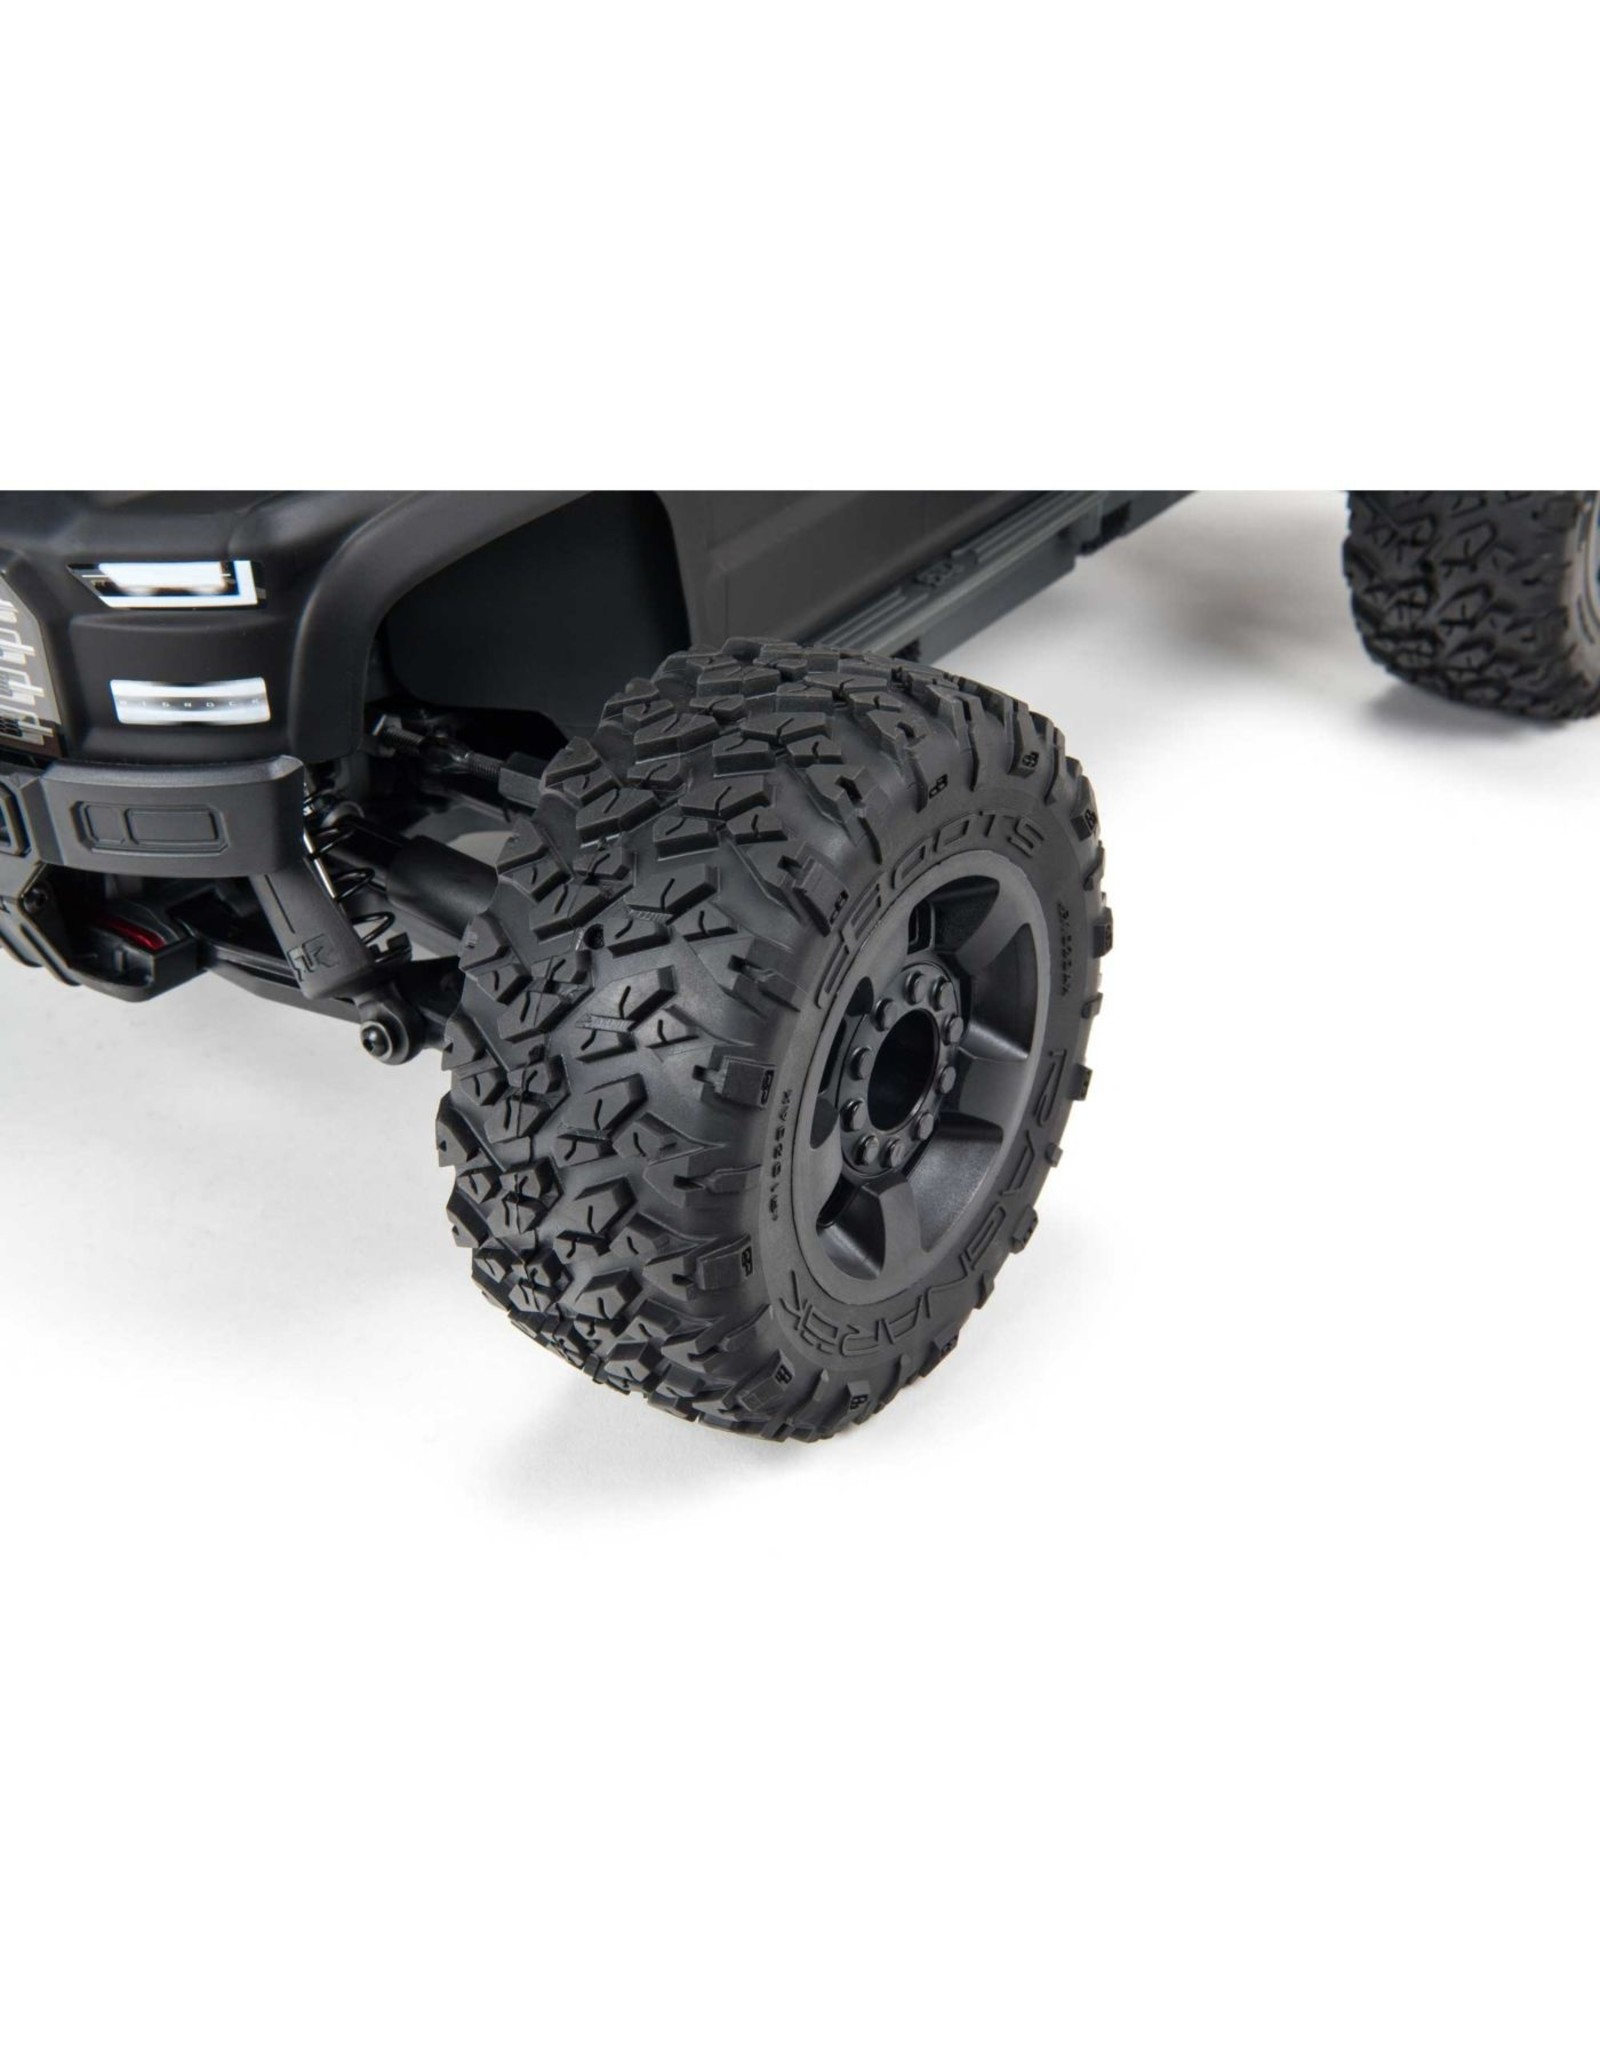 Arrma 1/10 BIG ROCK 4X4 V3 3S BLX Brushless Monster Truck RTR - Black